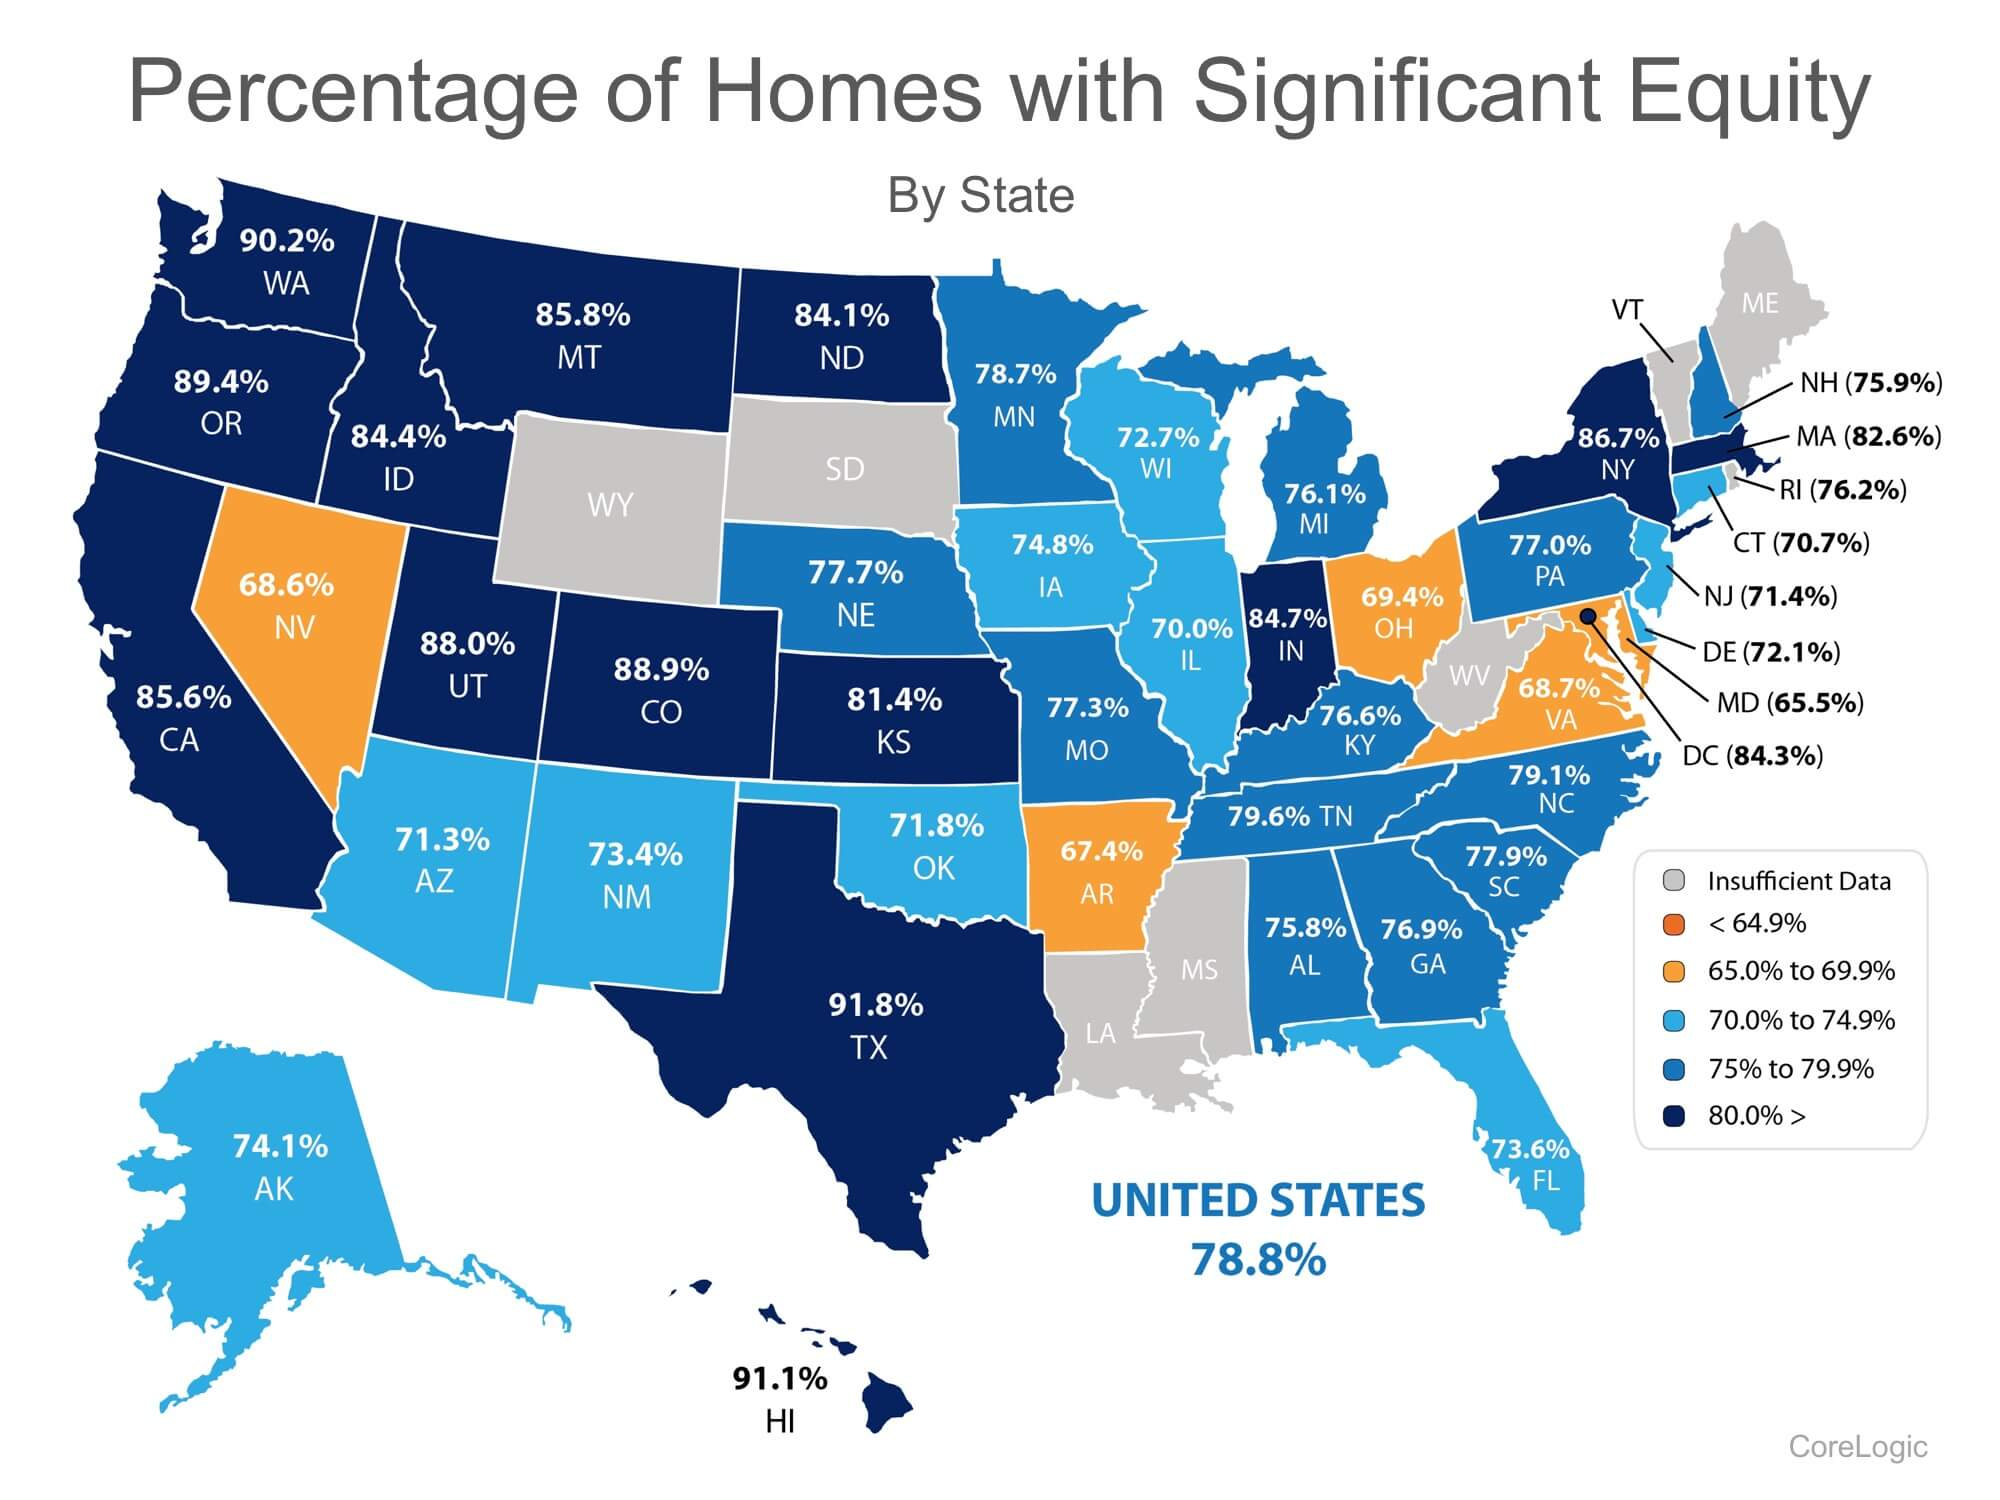 Homeowners have Significant Equity in their homes